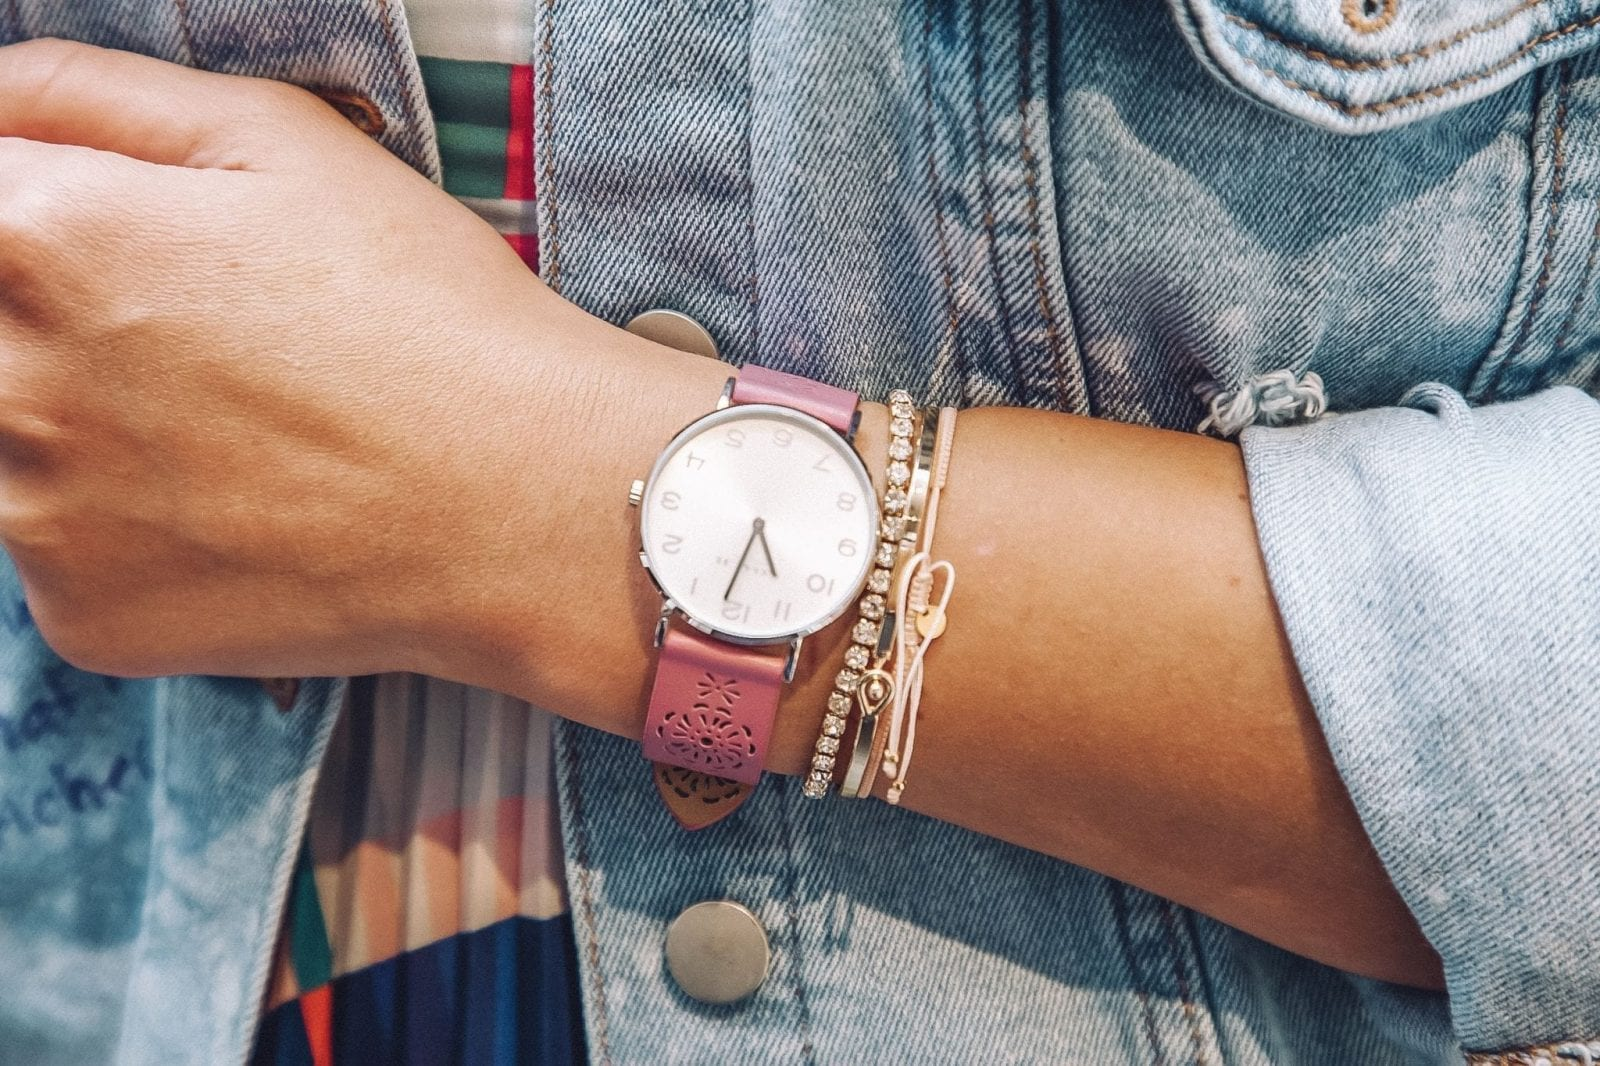 This is a close up of my arm candy featuring a gorgeous lilac Coach watch from Macy's.